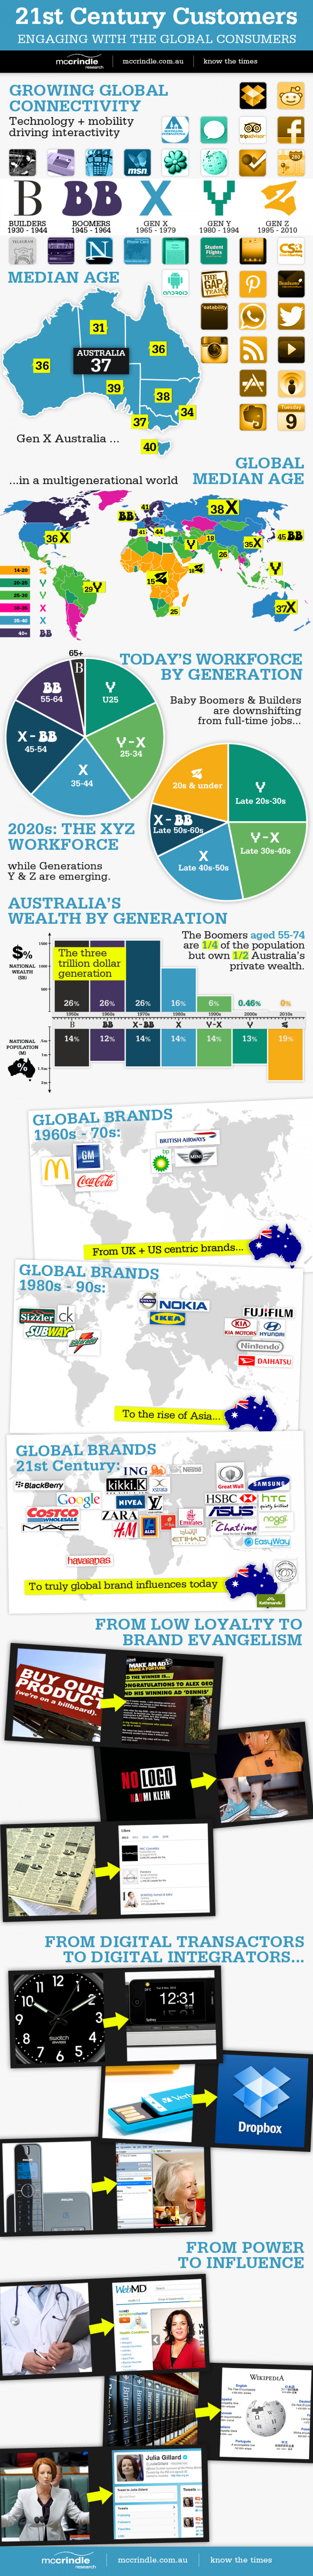 21st Century Customers: Engaging with the global consumers Infographic